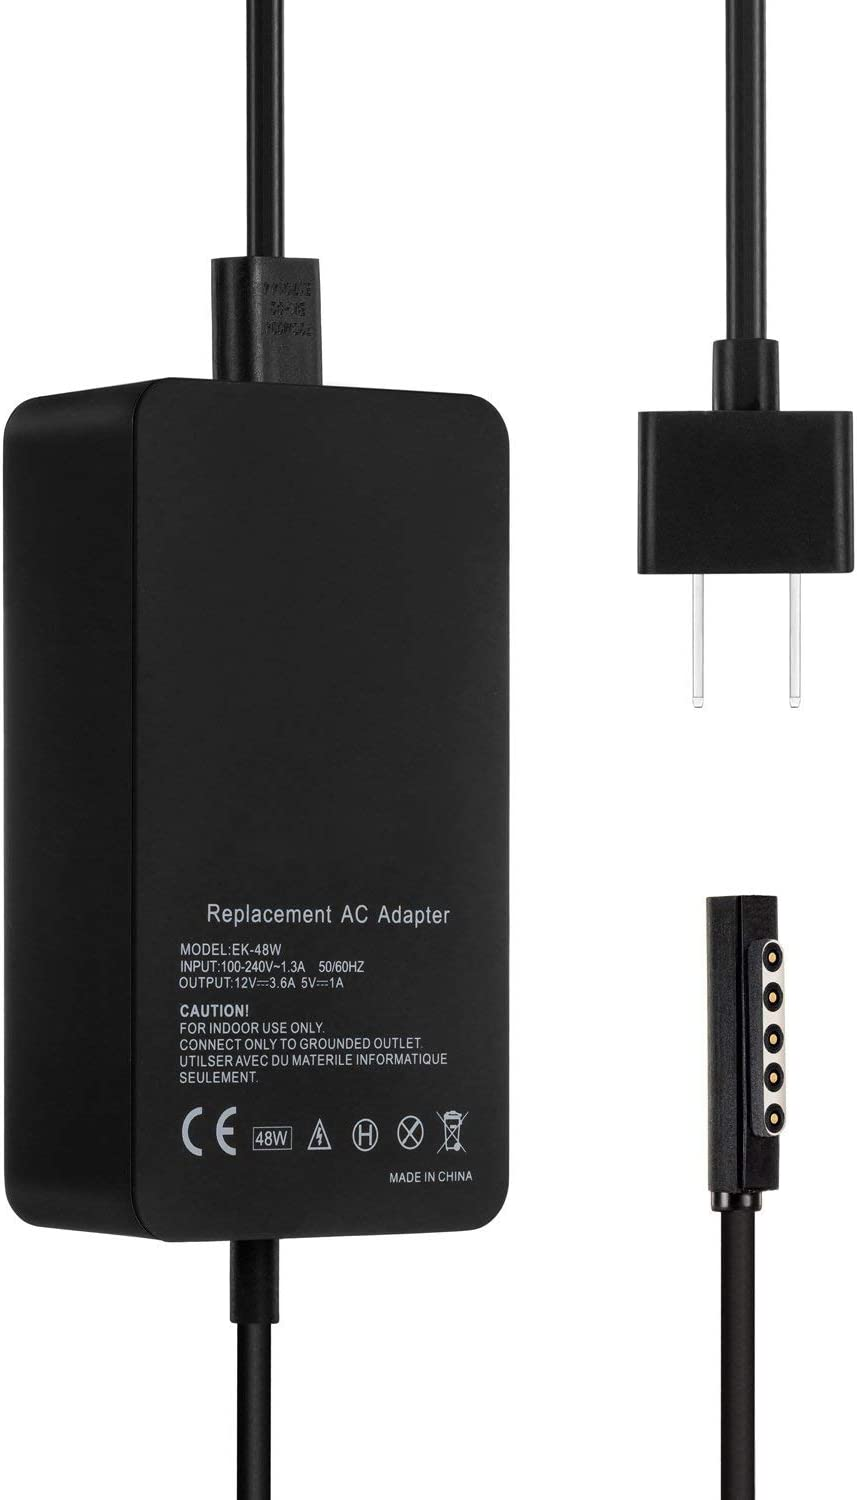 Surface Pro 2 Pro 1 Charger, E EGOWAY 48W 12V 3.6A Surface Power Adapter Charger Compatible for Surface Pro 2 Pro 1 Surface RT with USB Charging Port